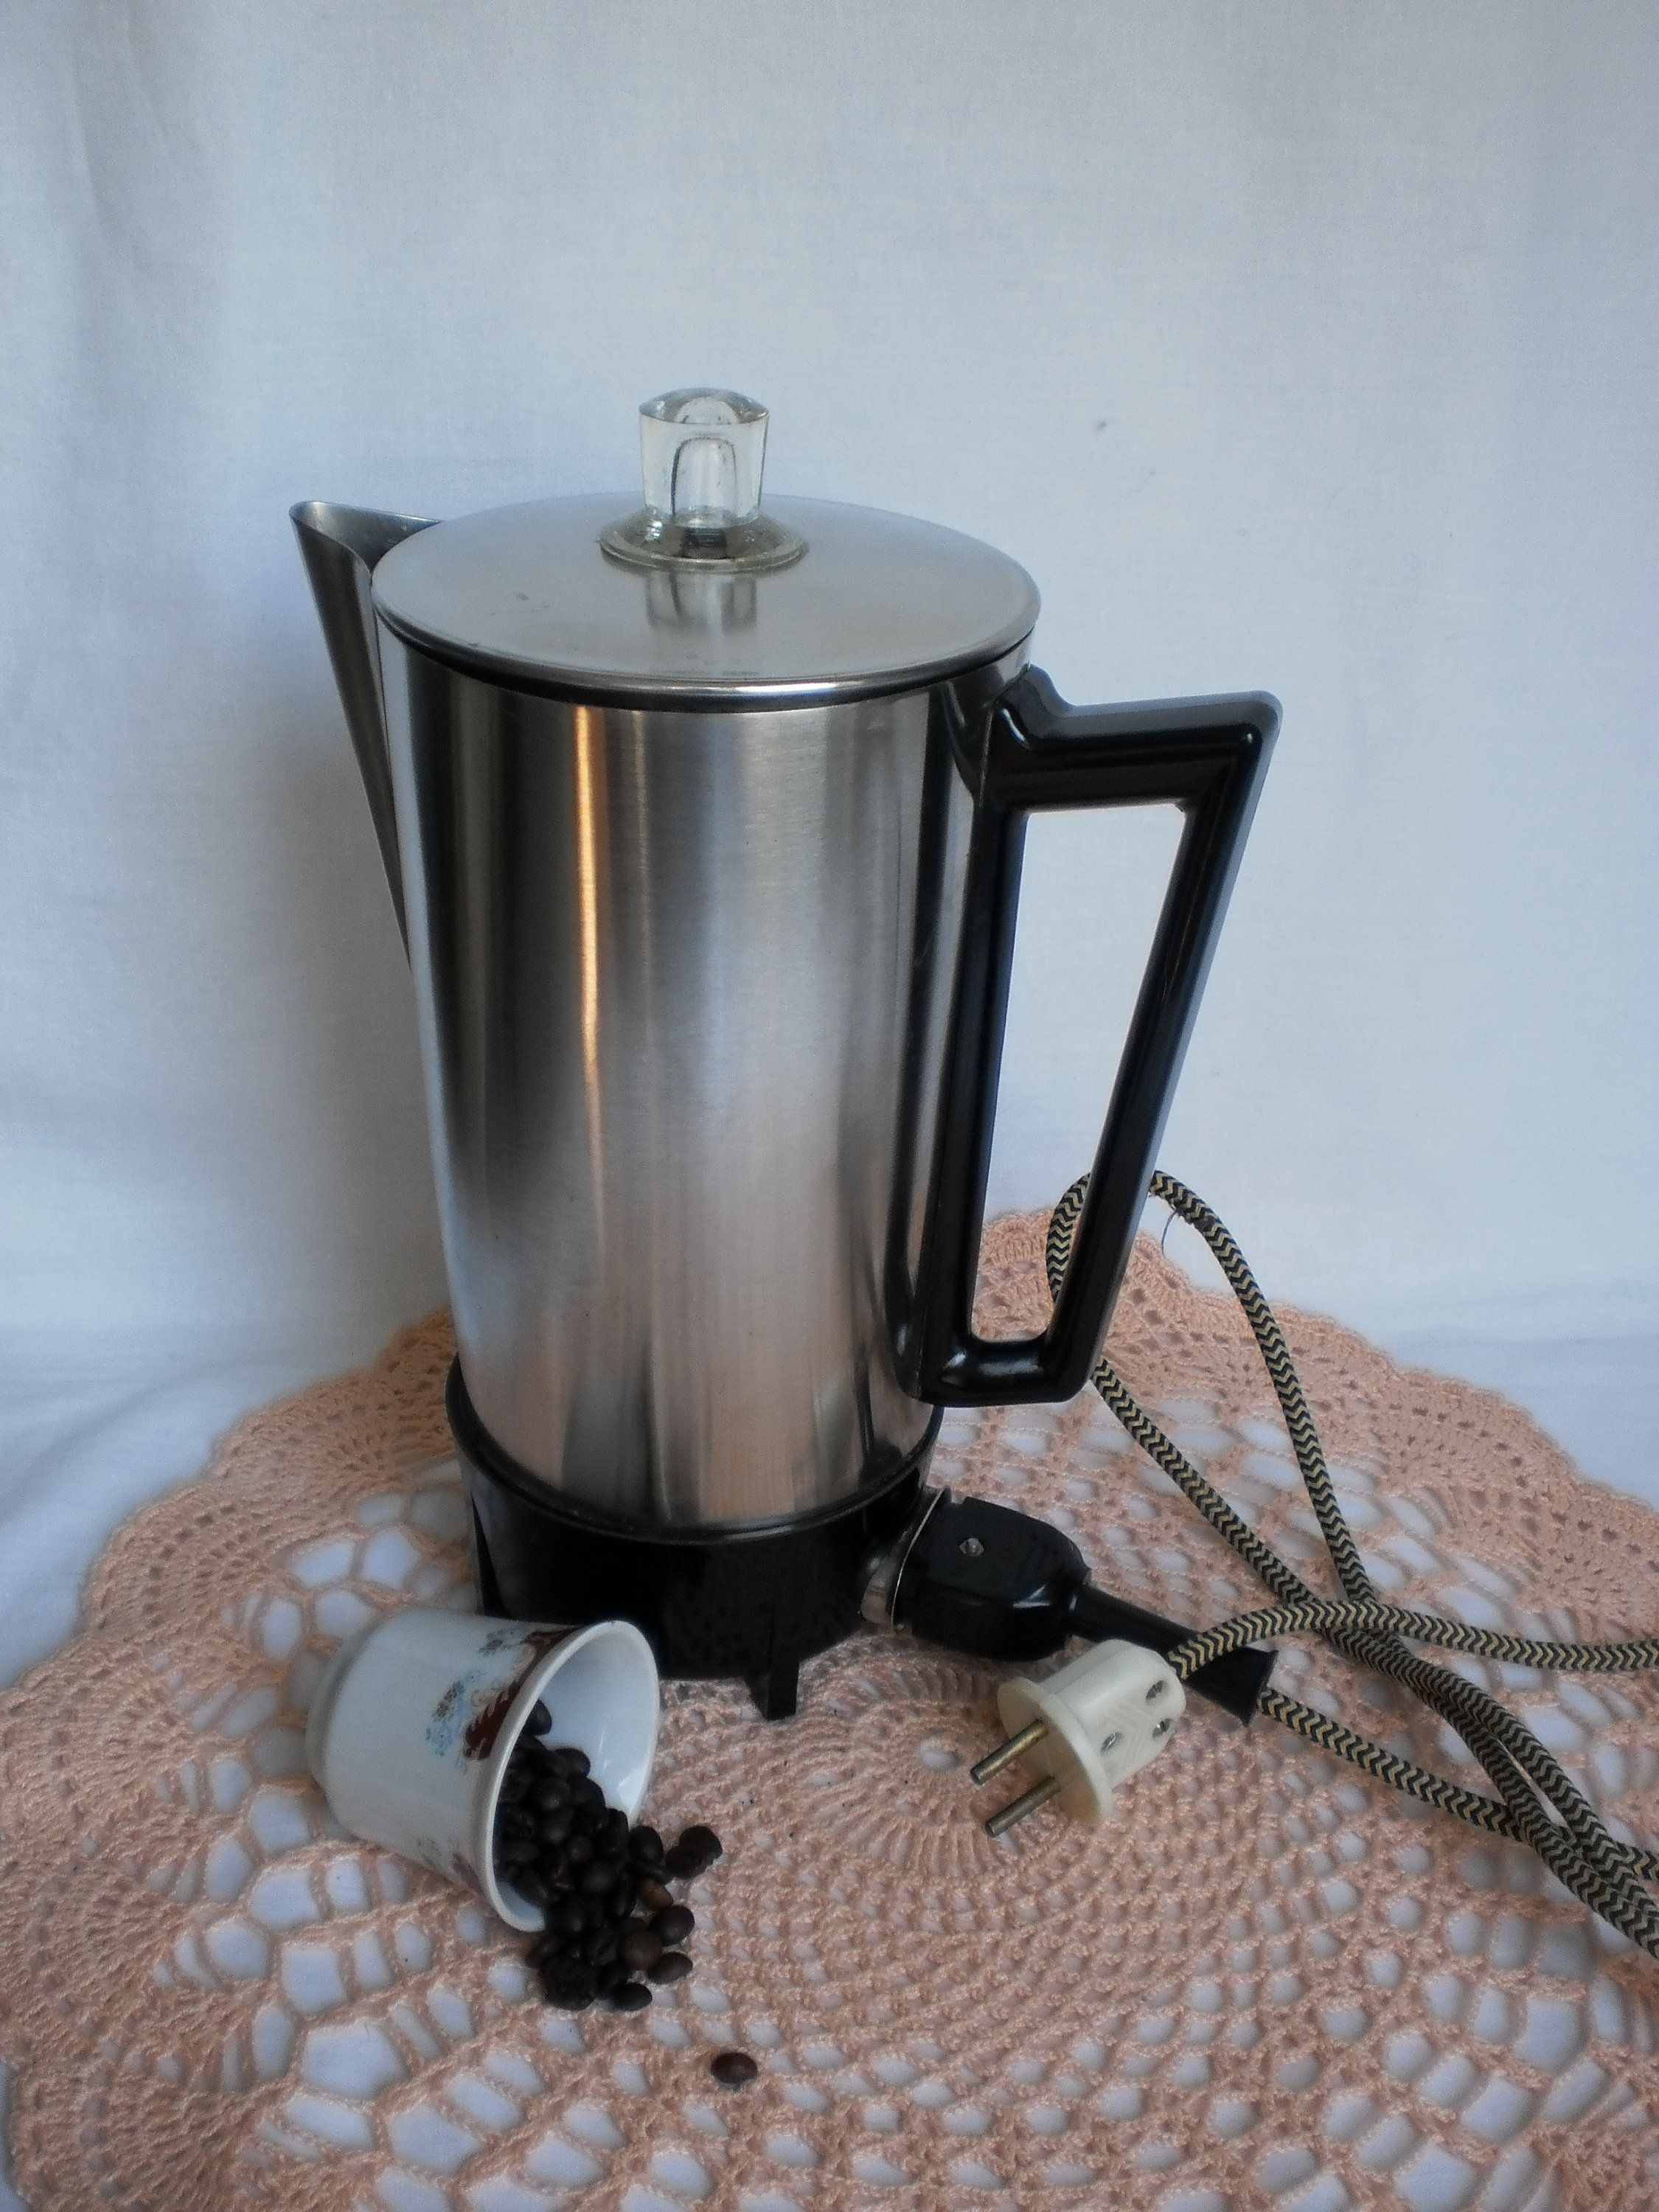 Soviet Retro Coffee Maker Vintage Large Percolator Old Electric Stainless Steel